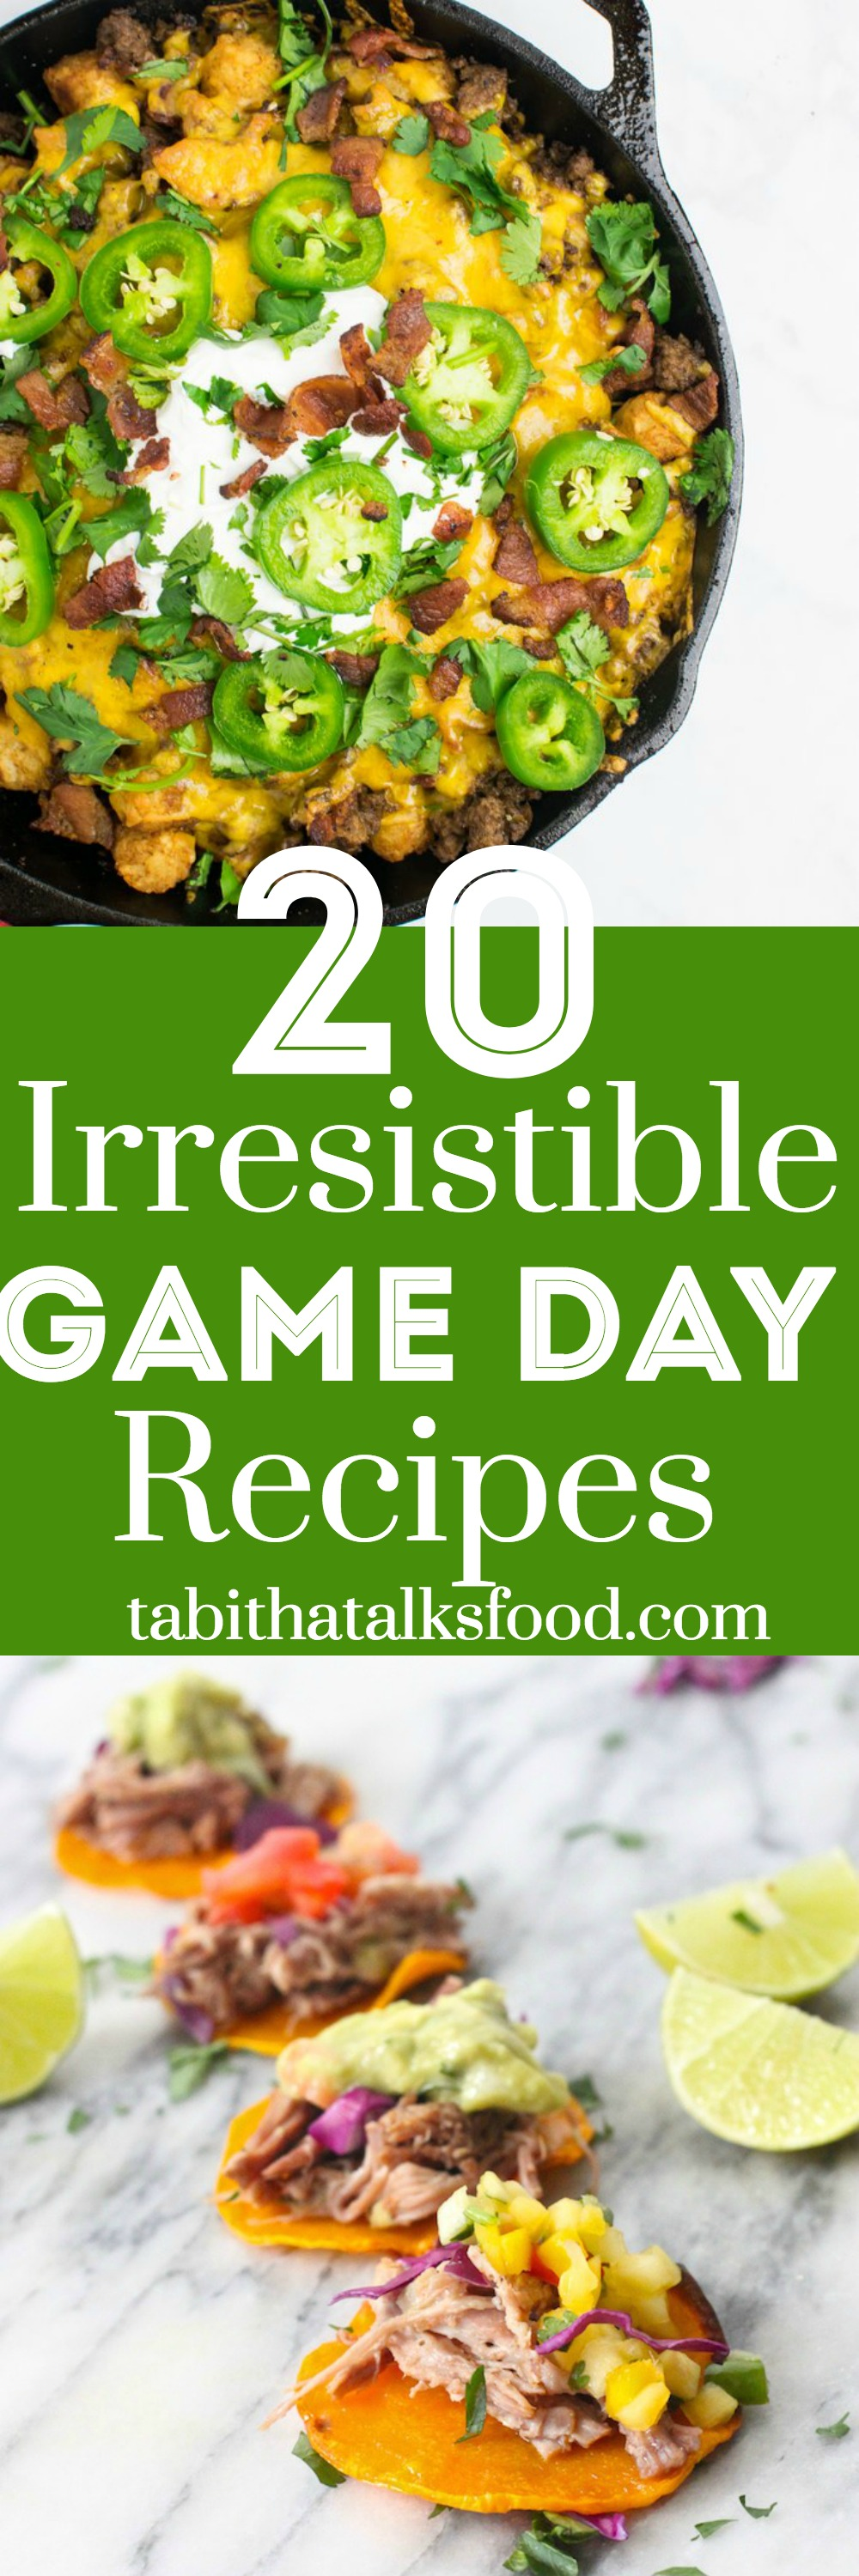 20 irresistible game day recipes tabitha talks food 20 game day recipes pinterest tabitha talks food forumfinder Gallery